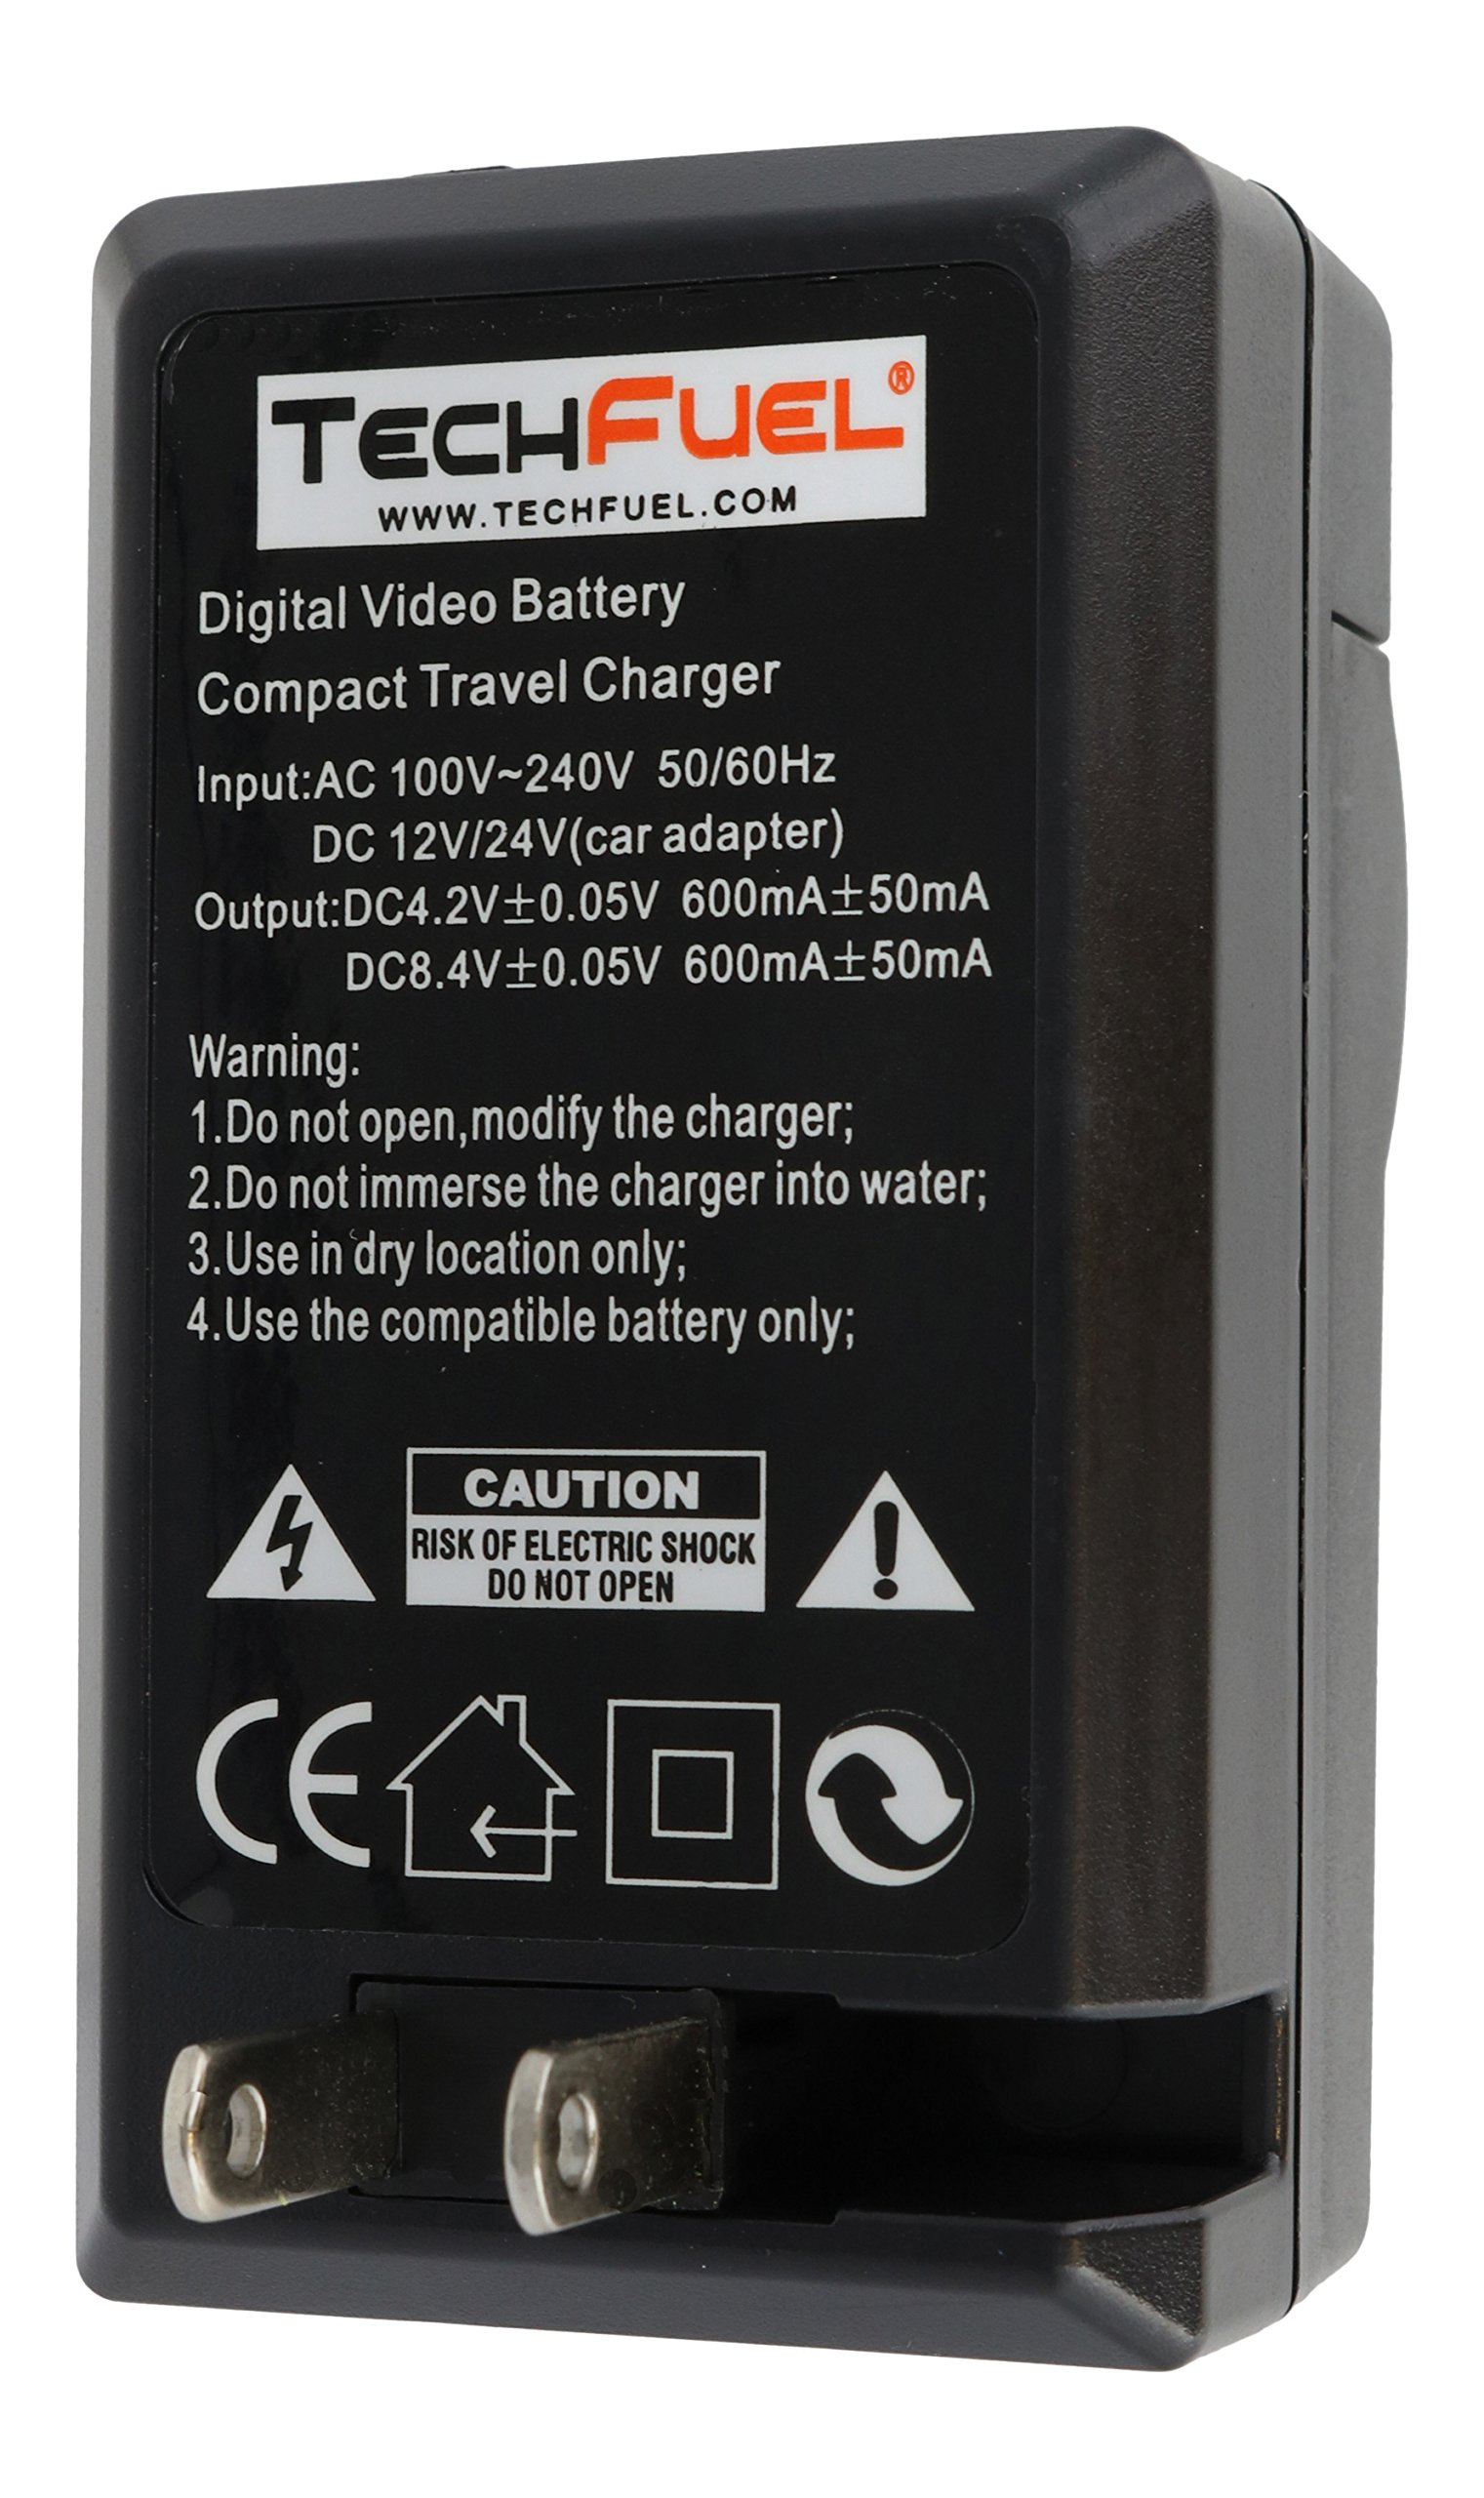 TechFuel Battery Charger Kit for Panasonic HDC-HS9 Camcorder - For Home, Car and Travel Use by TechFuel (Image #4)